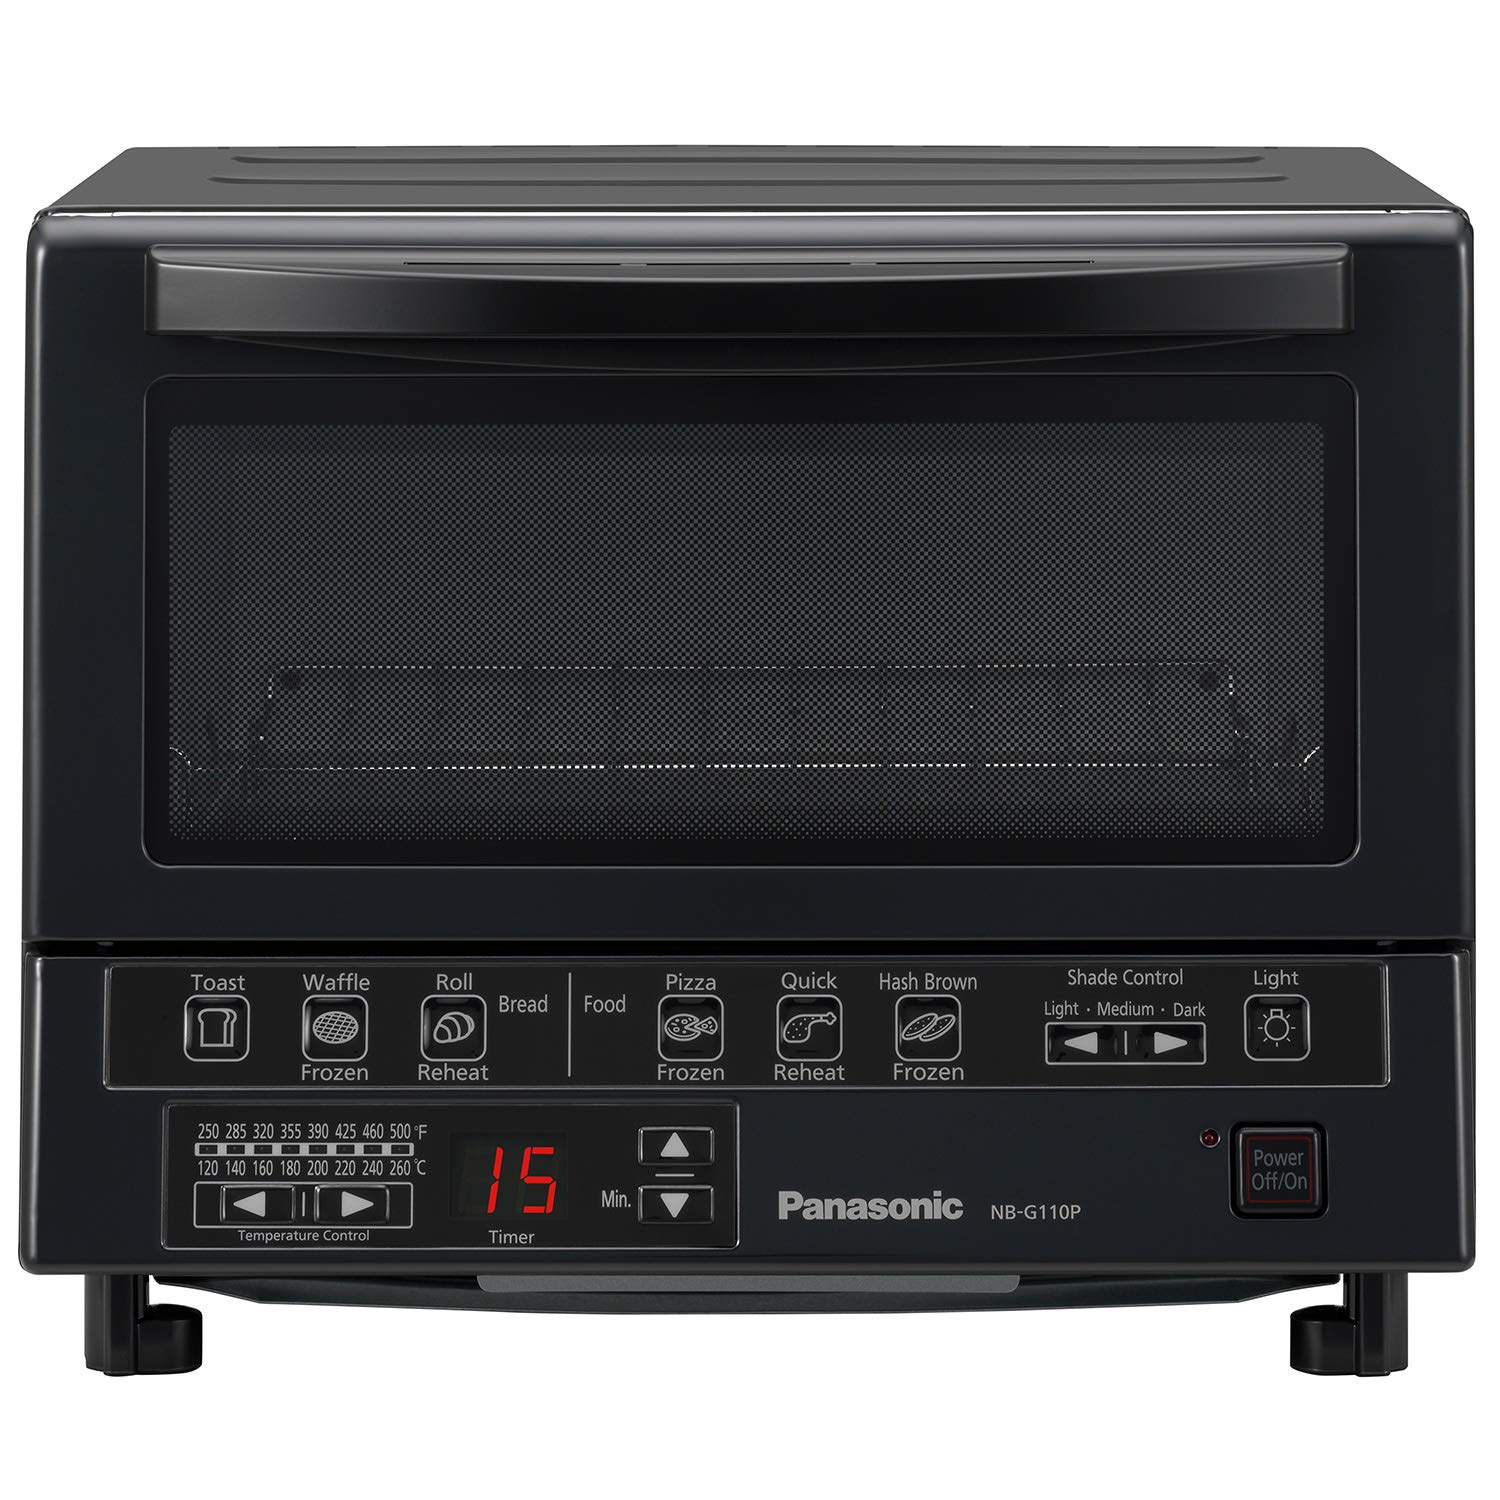 Panasonic NB-G110P-K FlashXpress Toaster Oven with Double Infrared Heating and Removable 9-Inch Inner Baking Tray, 1300W, 4-Slice, Black by Panasonic